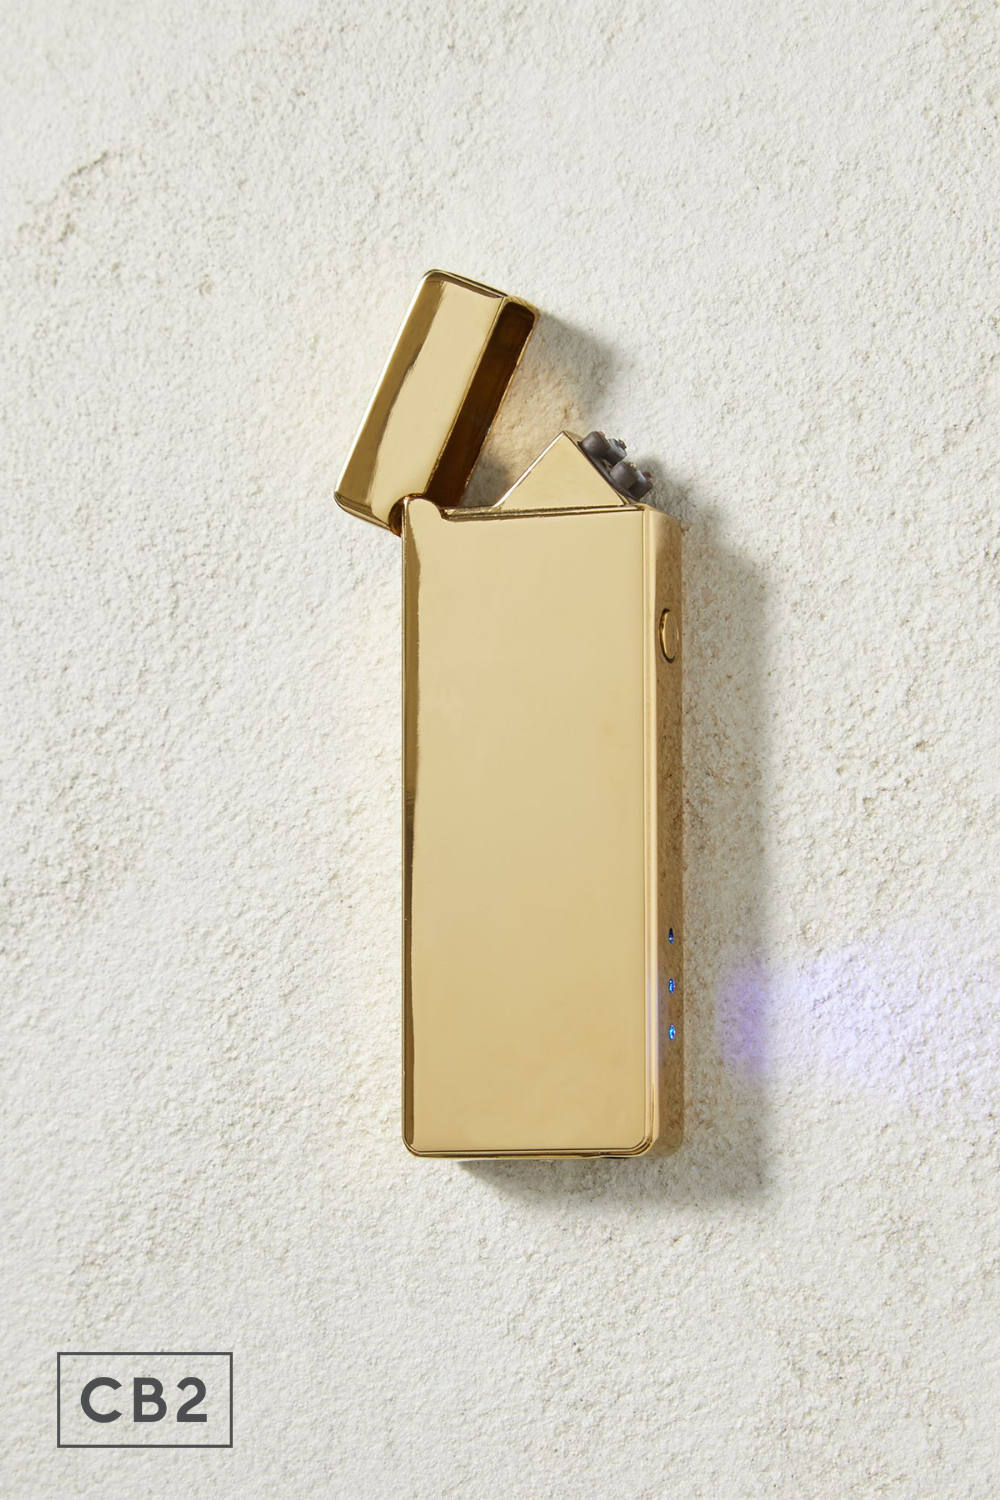 Sleek Brass Usb Candle Lighter Uses Electrical Energy Instead Of Harmful Butane Gas To Light Candles Indoors And Out In 2020 Candle Lighters Lighter Electrical Energy